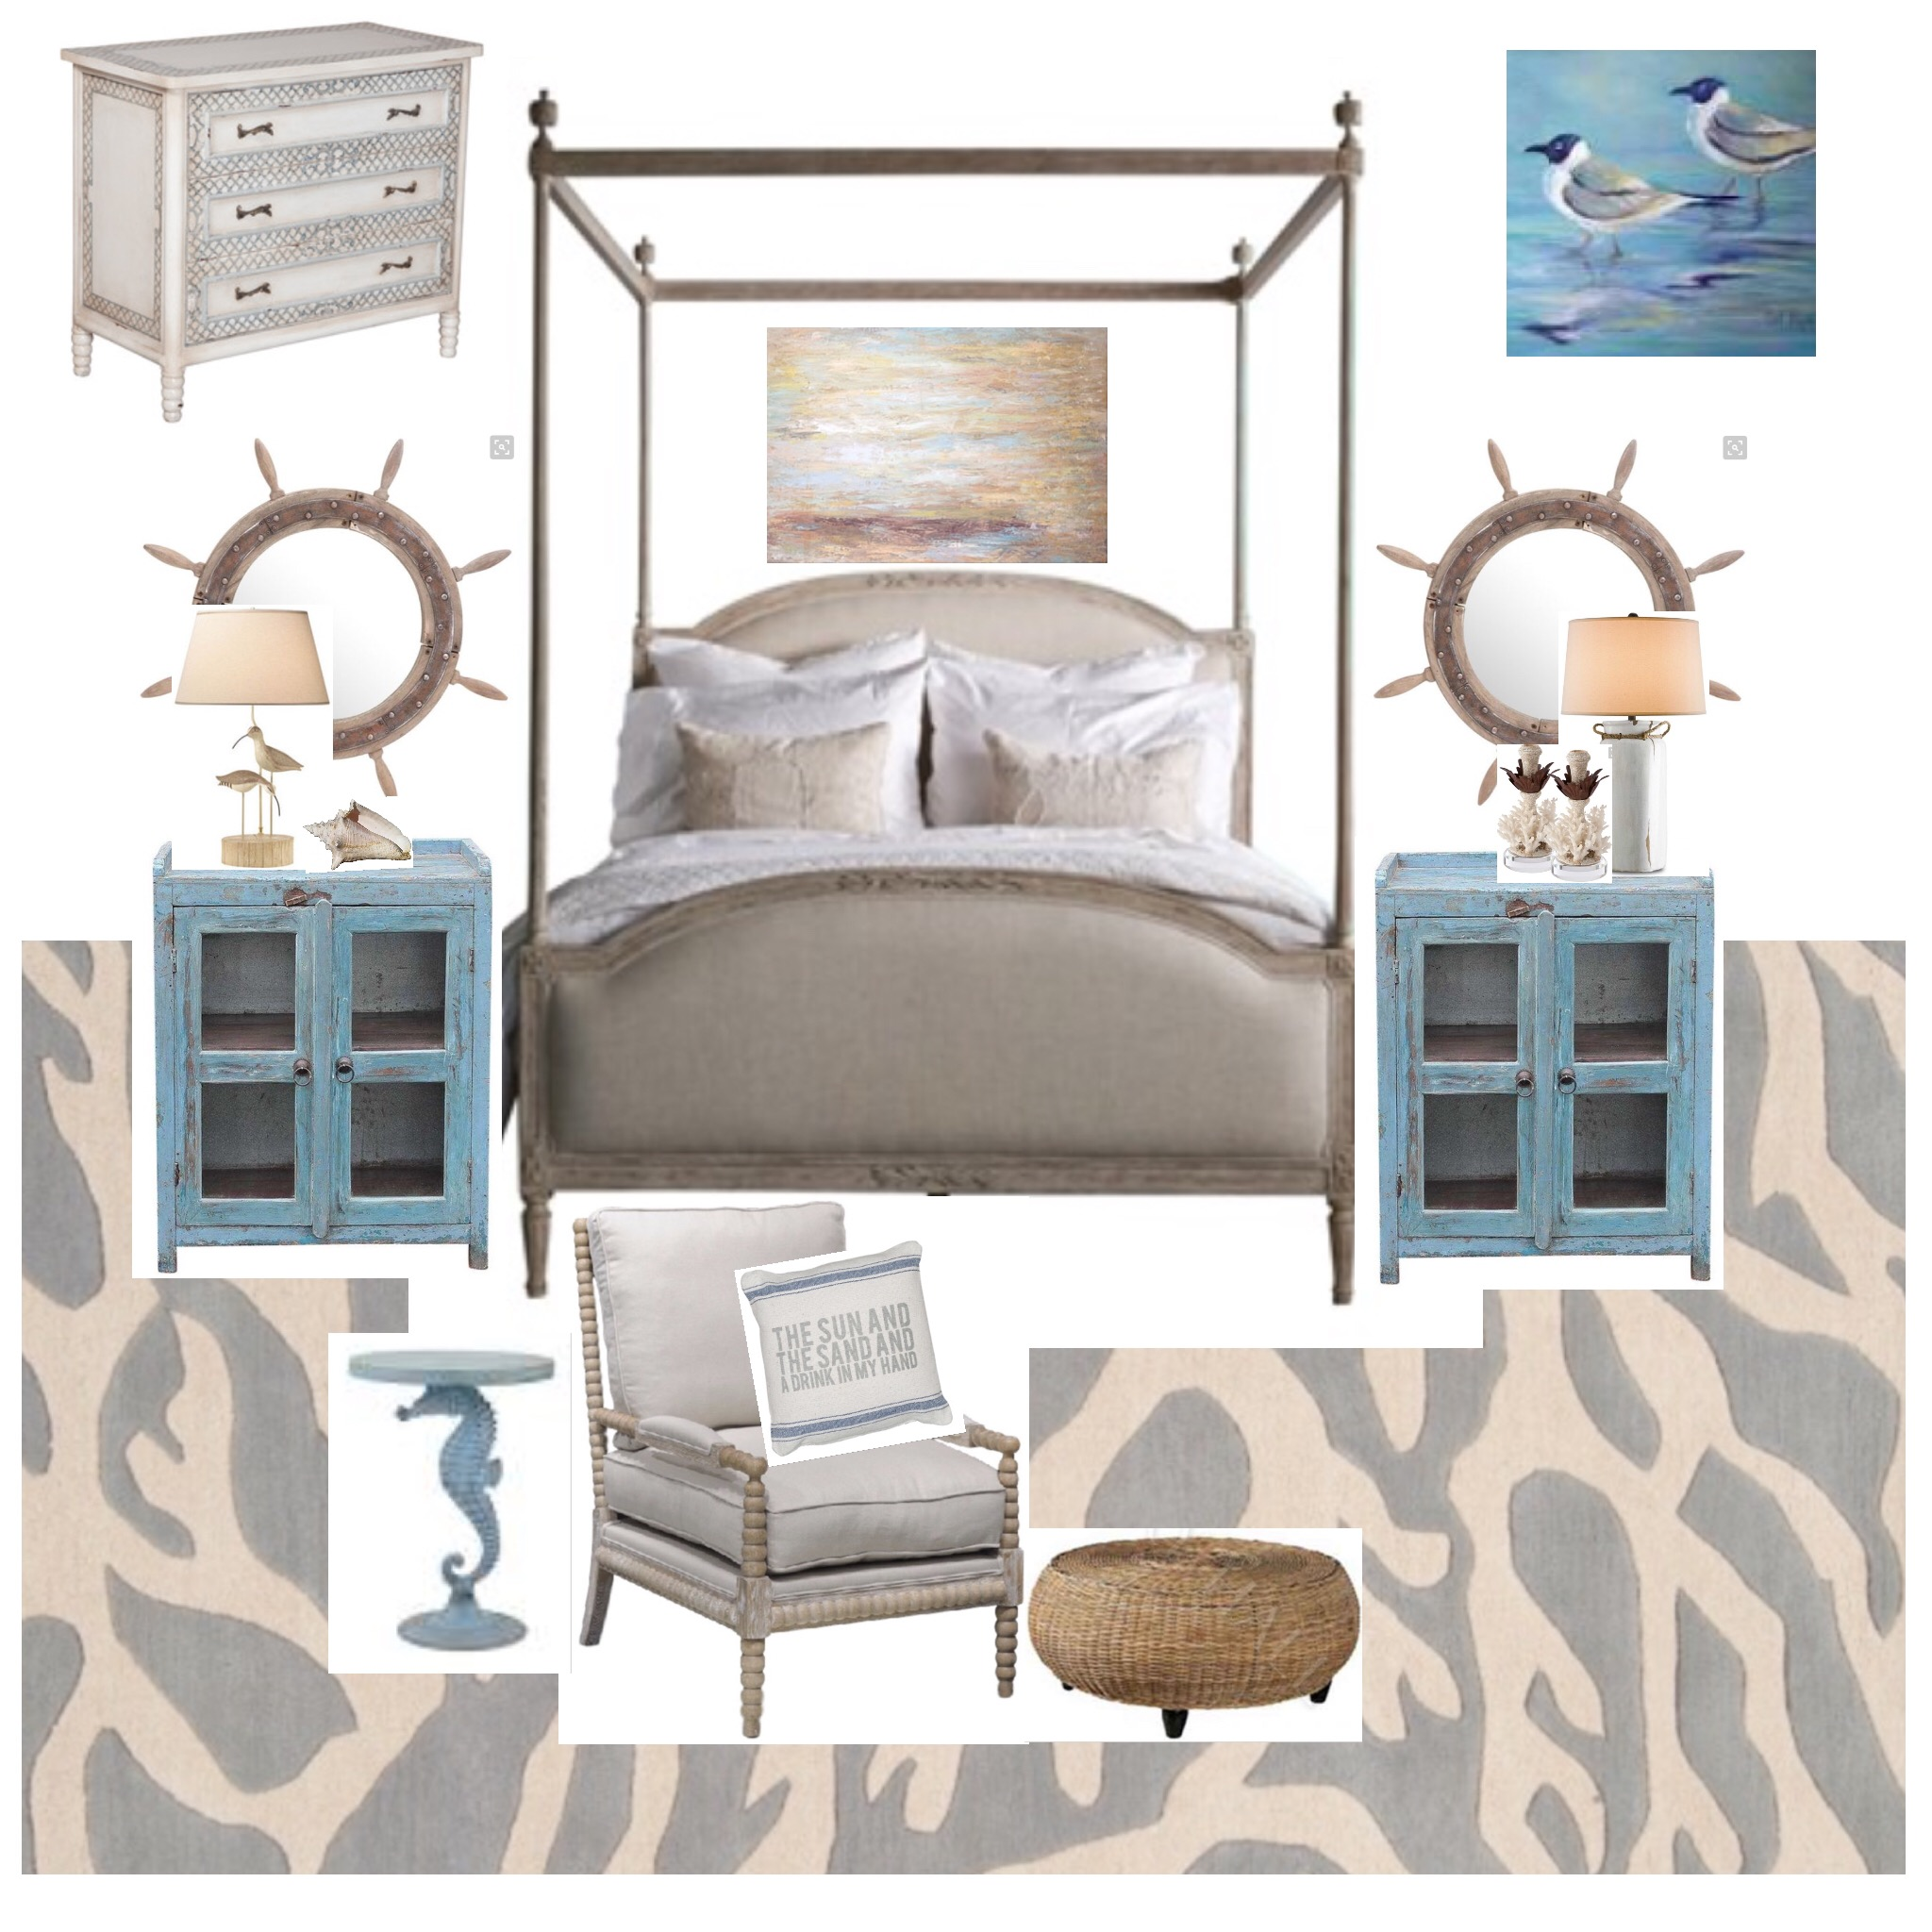 here are a few other beachy bedrooms in which i would gladly awaken to an ocean sunrise